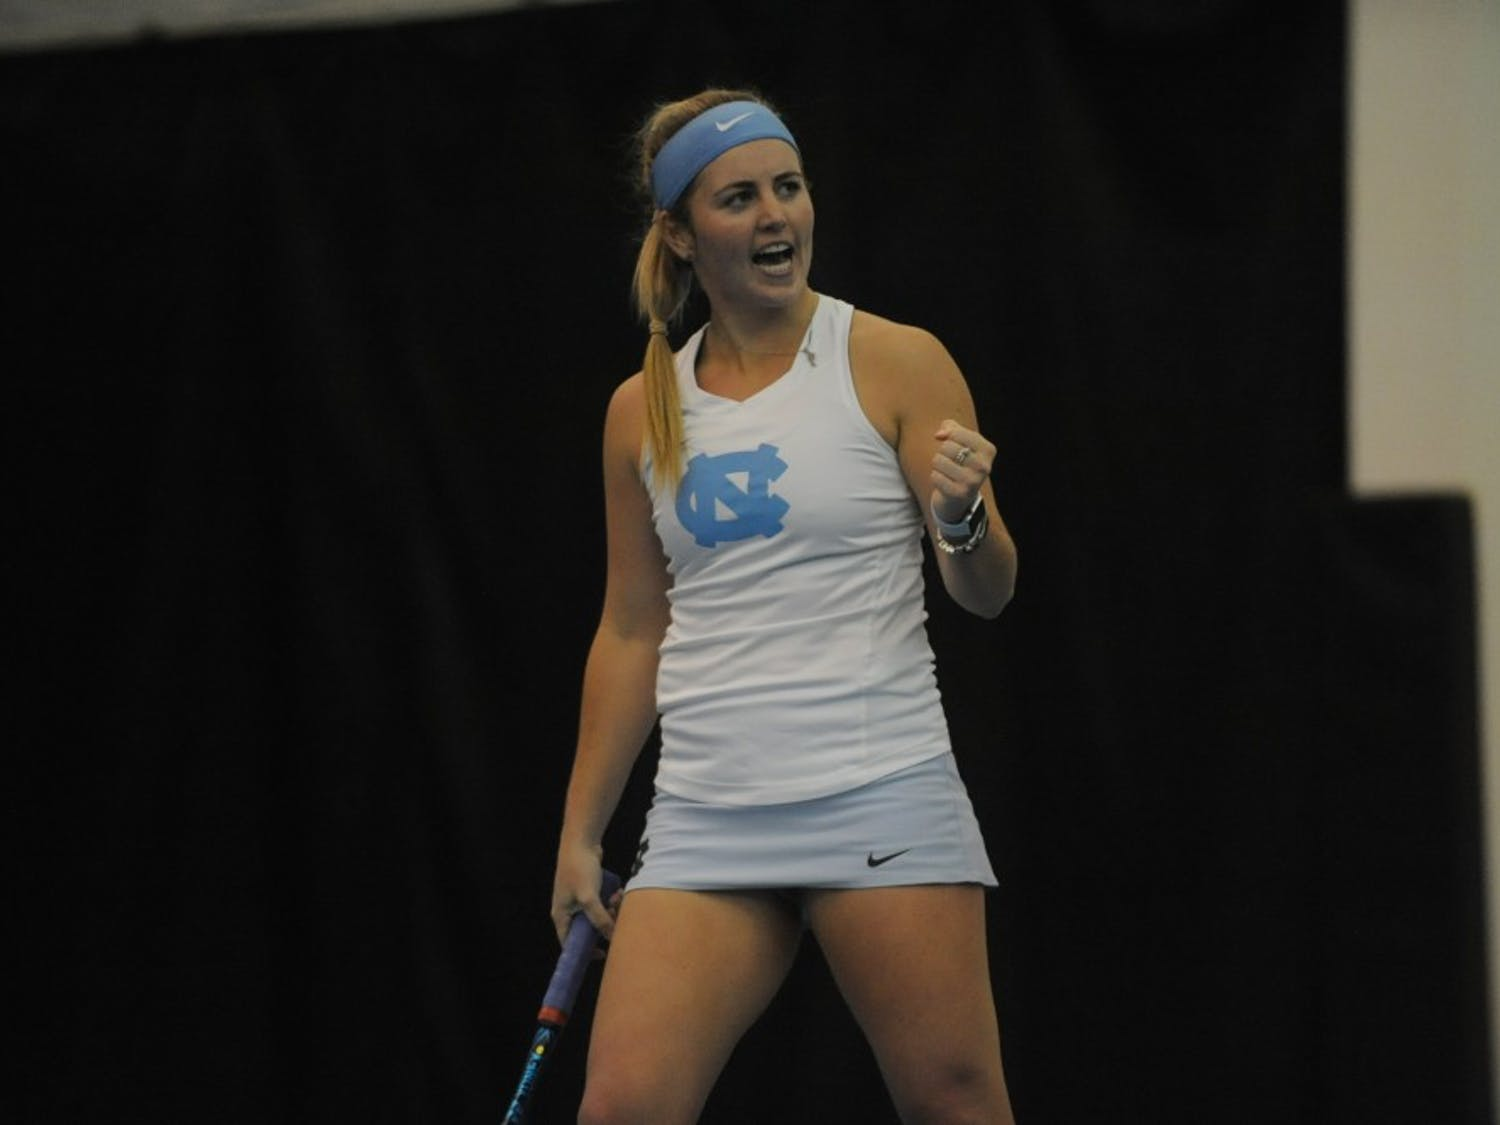 UNC women's tennis junior Makenna Jones celebrates after winning a game during a singles match against Louisville on Sunday, March 3, 2019. UNC won the match against the Cardinals.